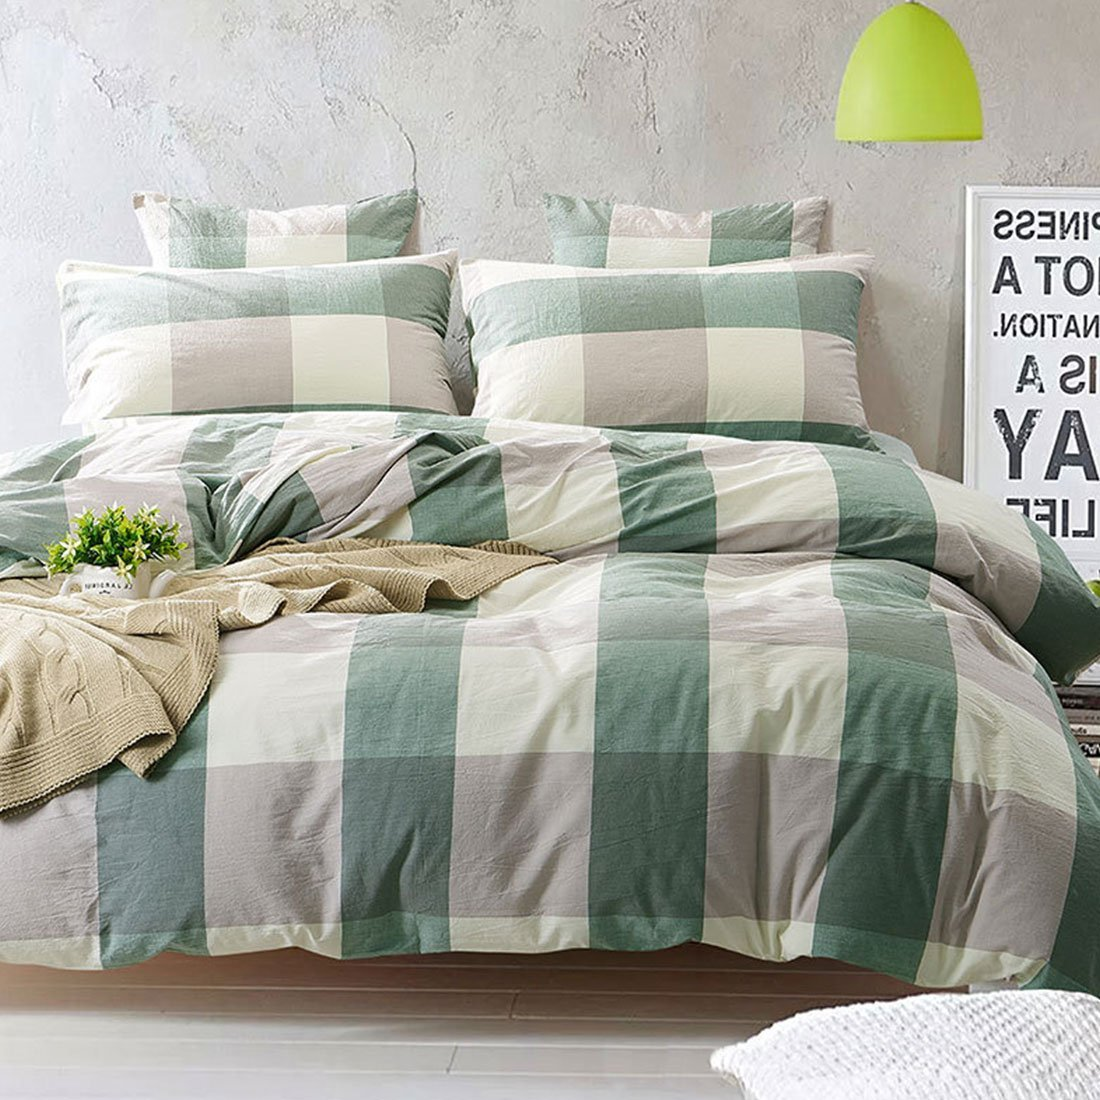 4 Pieces Duvet Cover Set Geometric Pattern Green and White Grid Plaid Bedding Set Comforter Set 1 Flat Sheet 1 Duvet Cover and 2 Pillow Cases by YEHO Art Gallery (Queen Size)